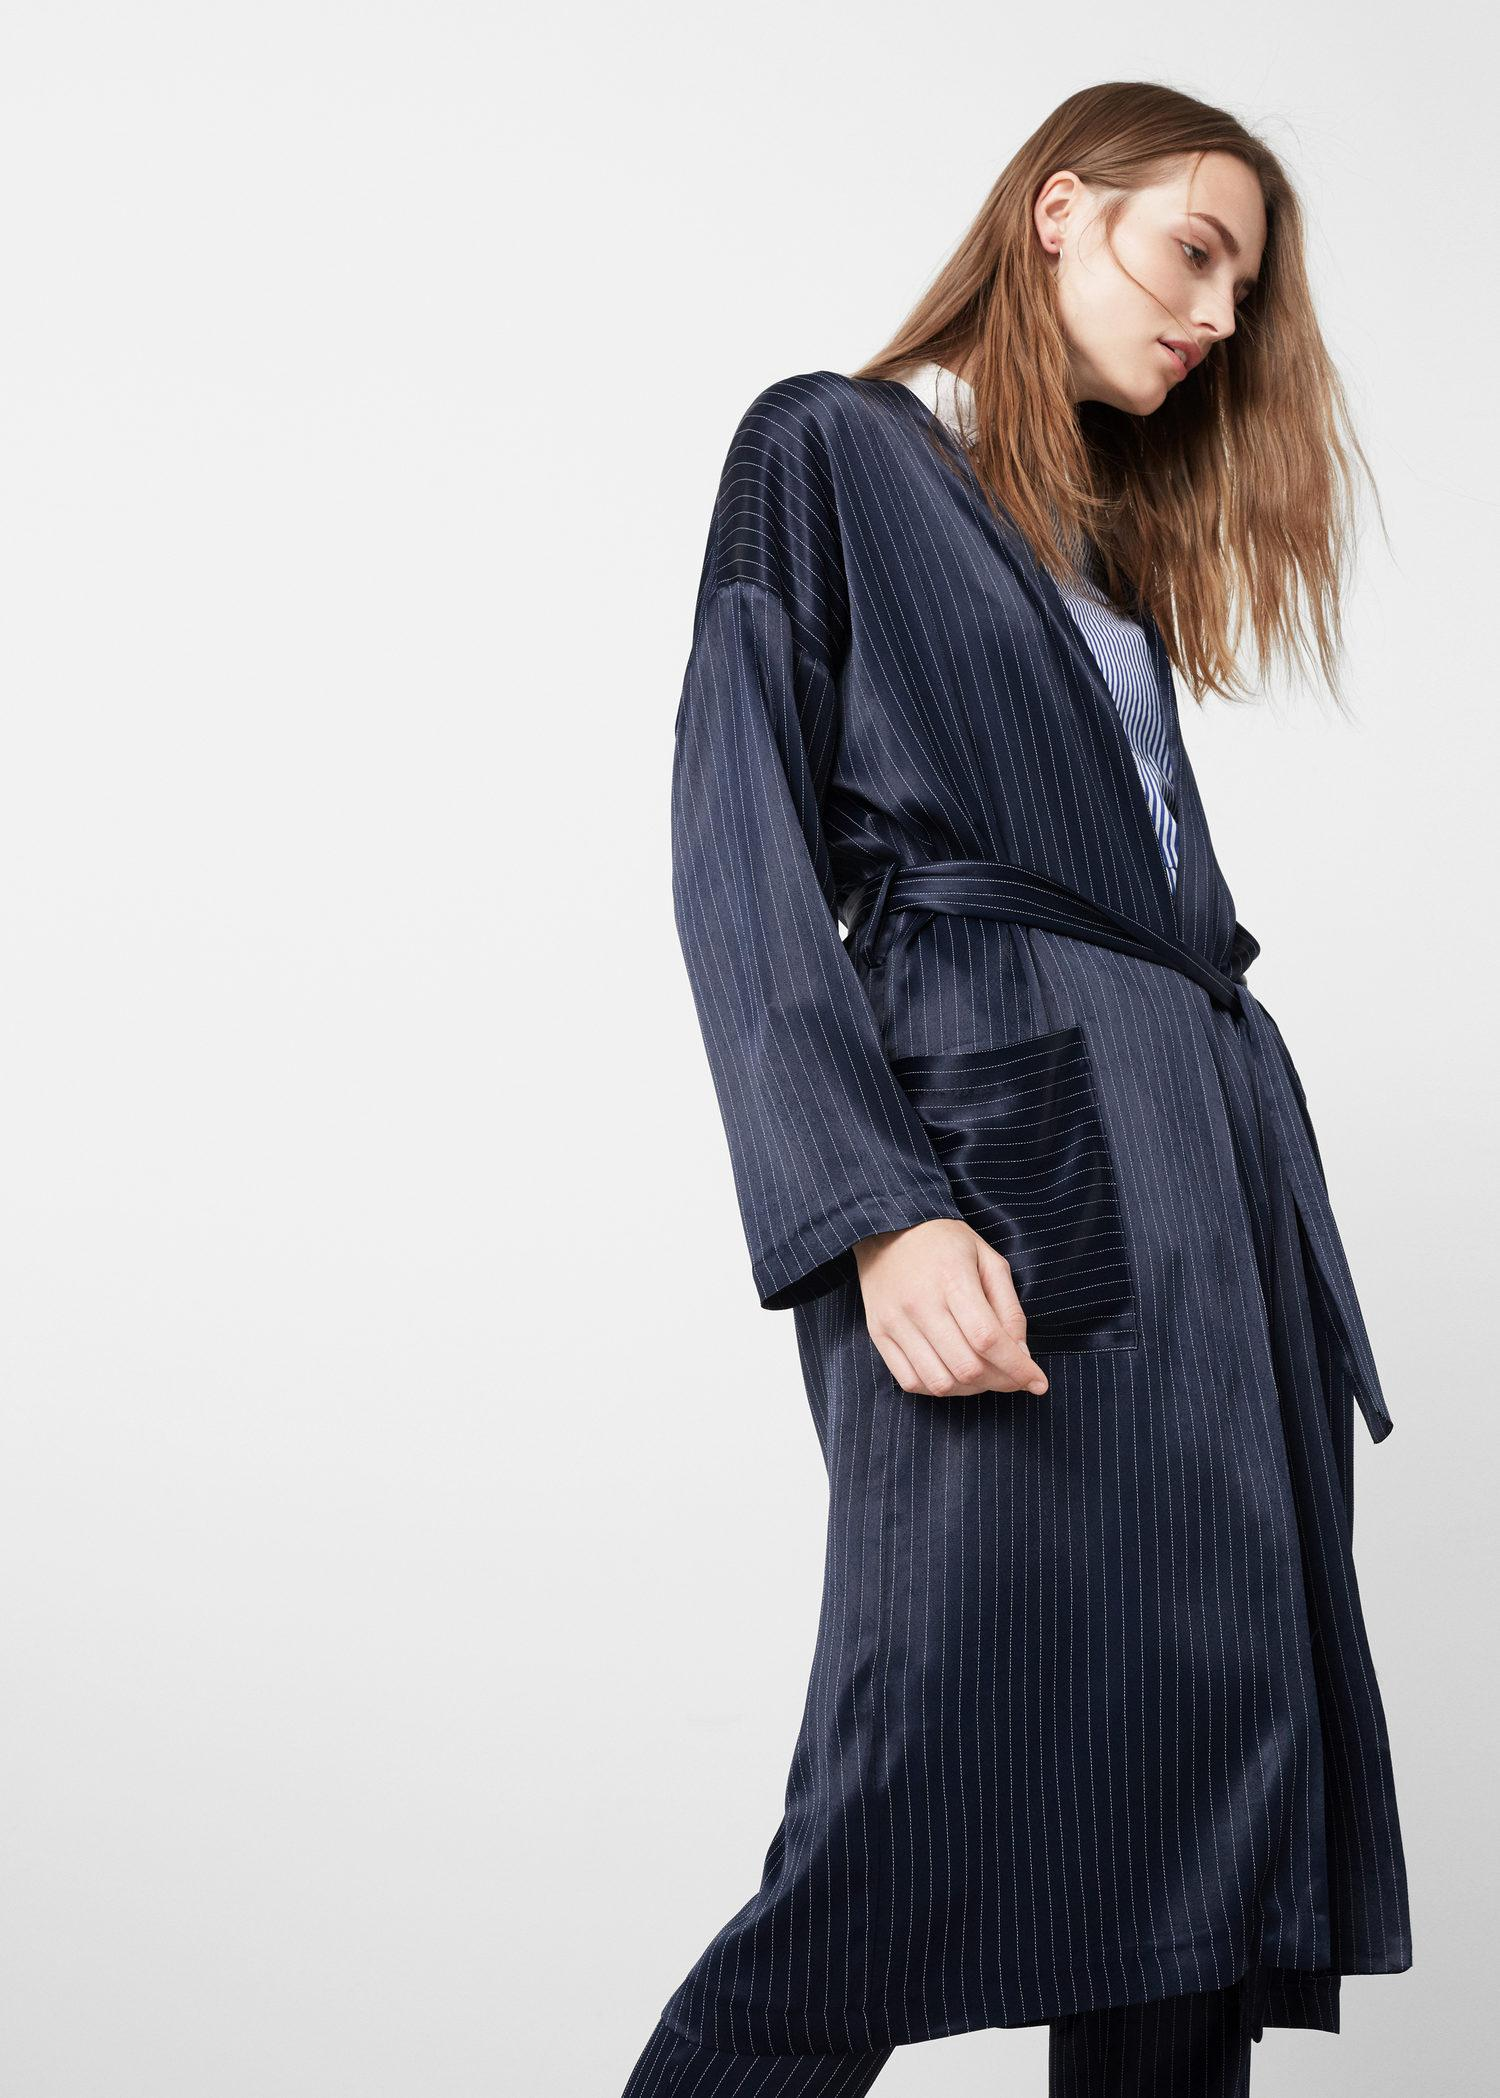 Mango satined robe in blue lyst for Robe jean mango